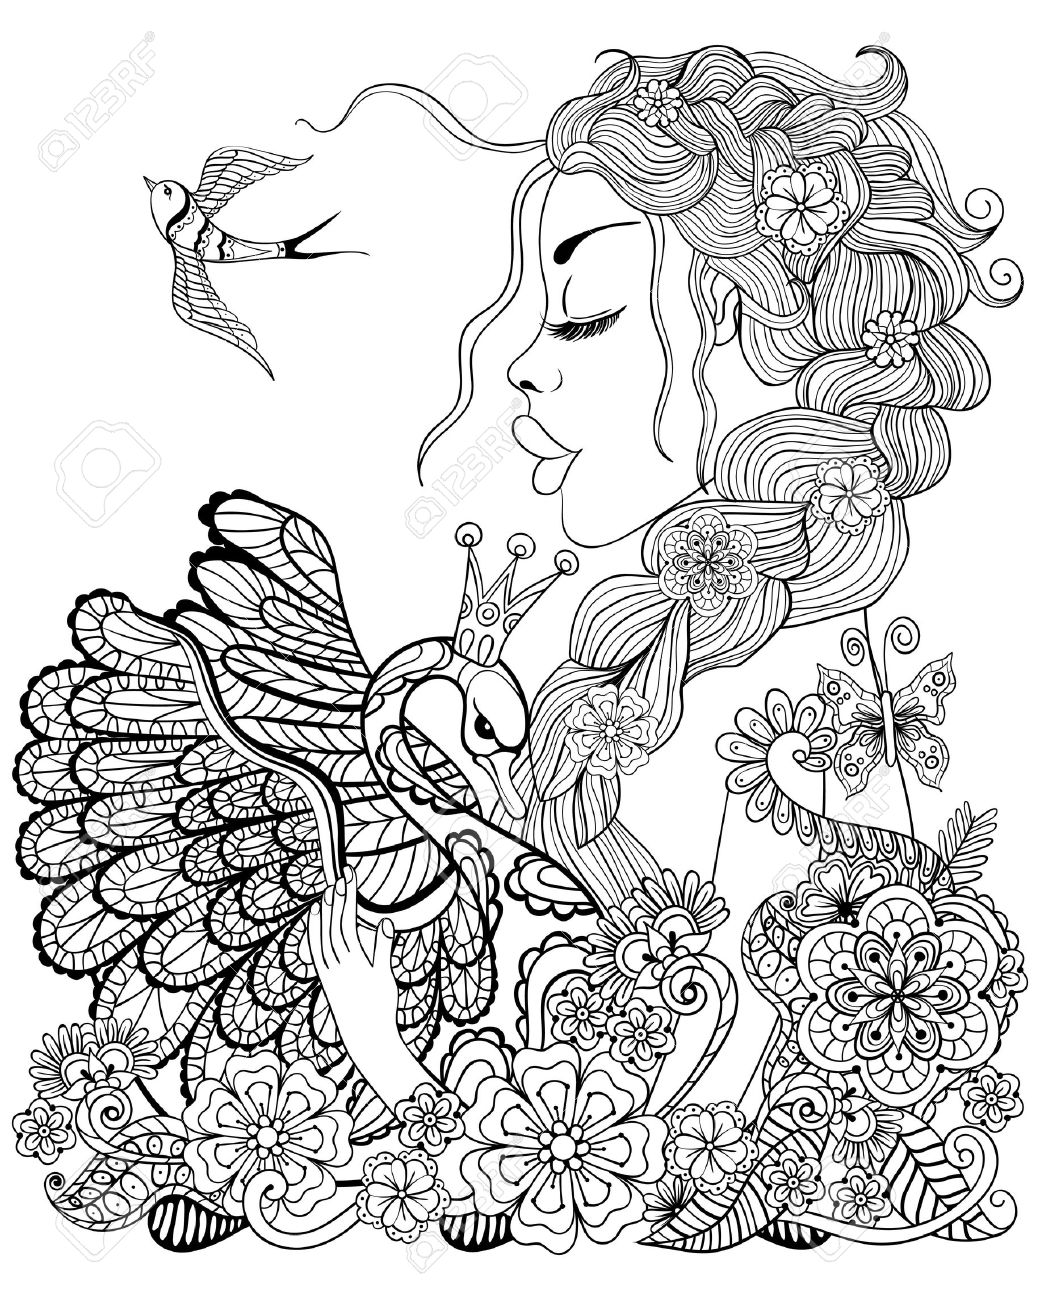 Forest Fairy With Wreath On Head Hugging Swan In Flower For ...